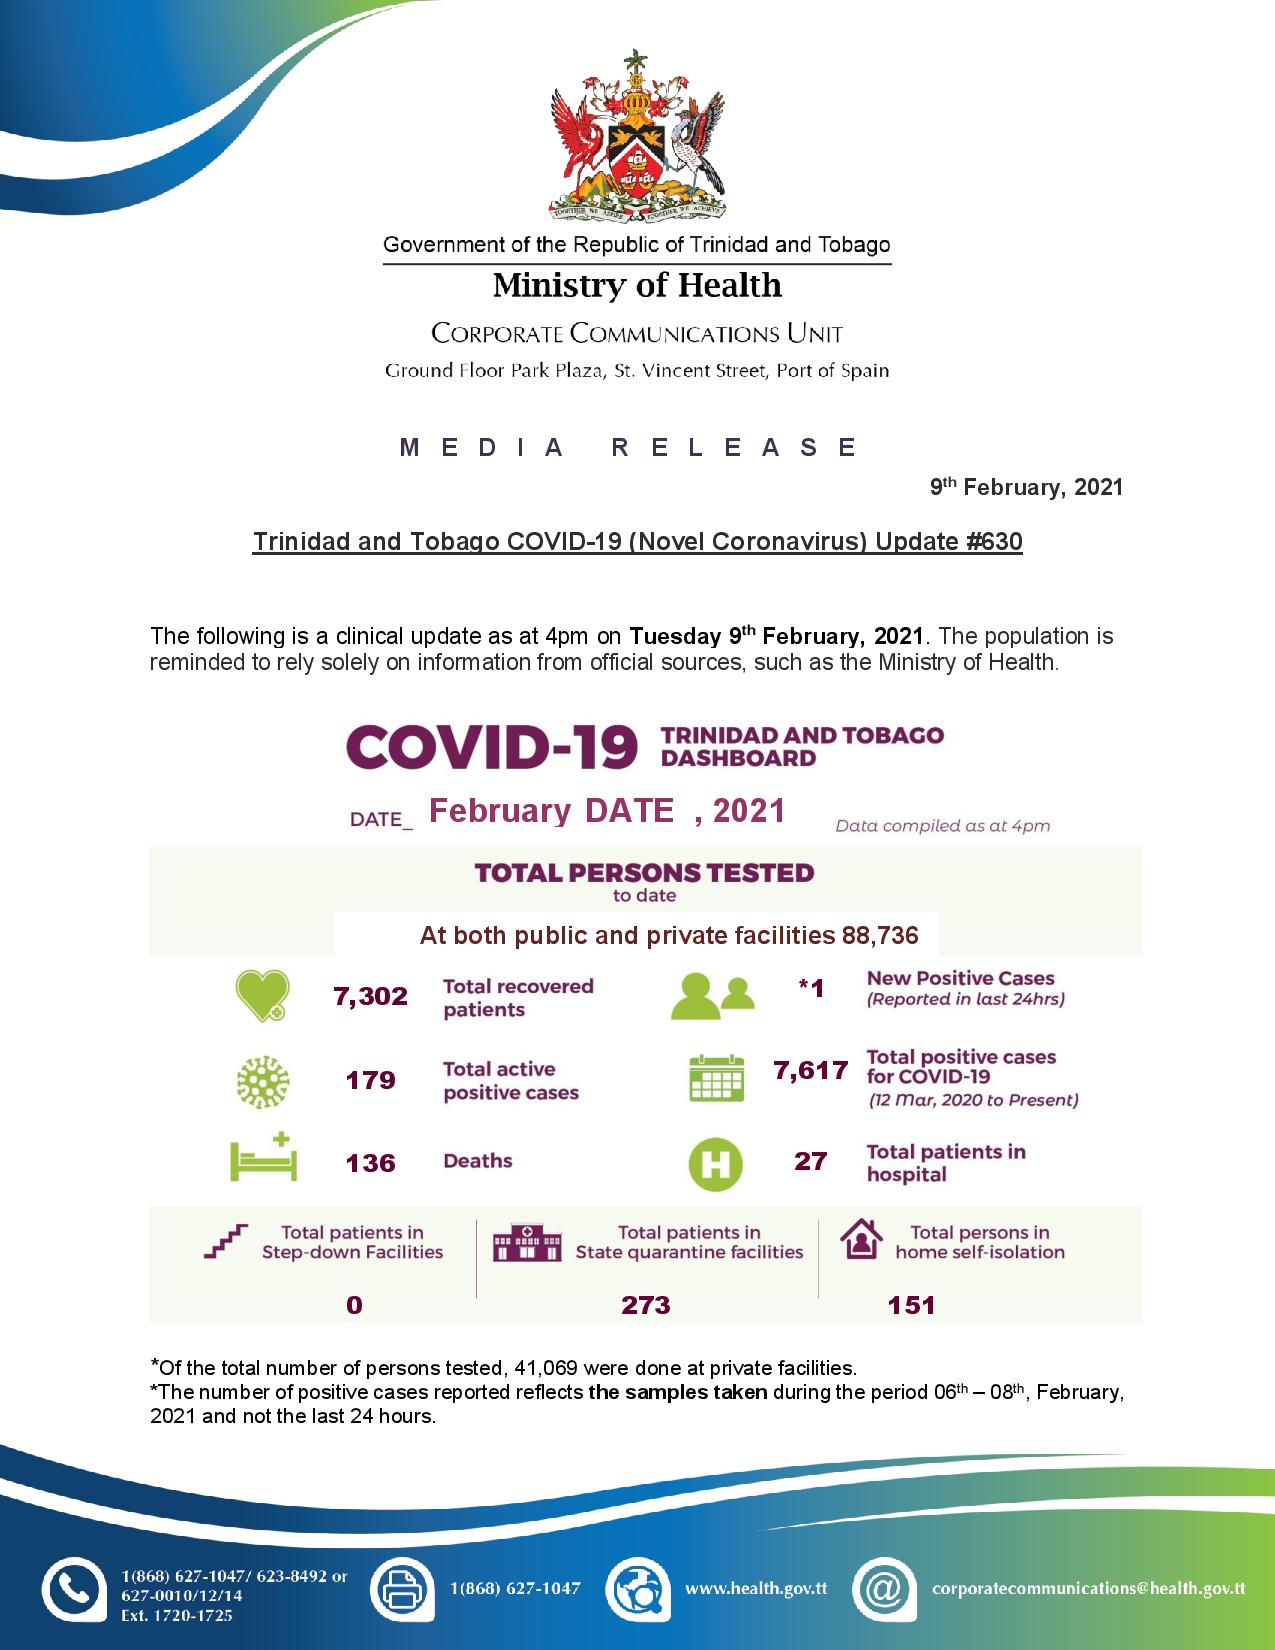 COVID-19 UPDATE - Tuesday 9th February 2021